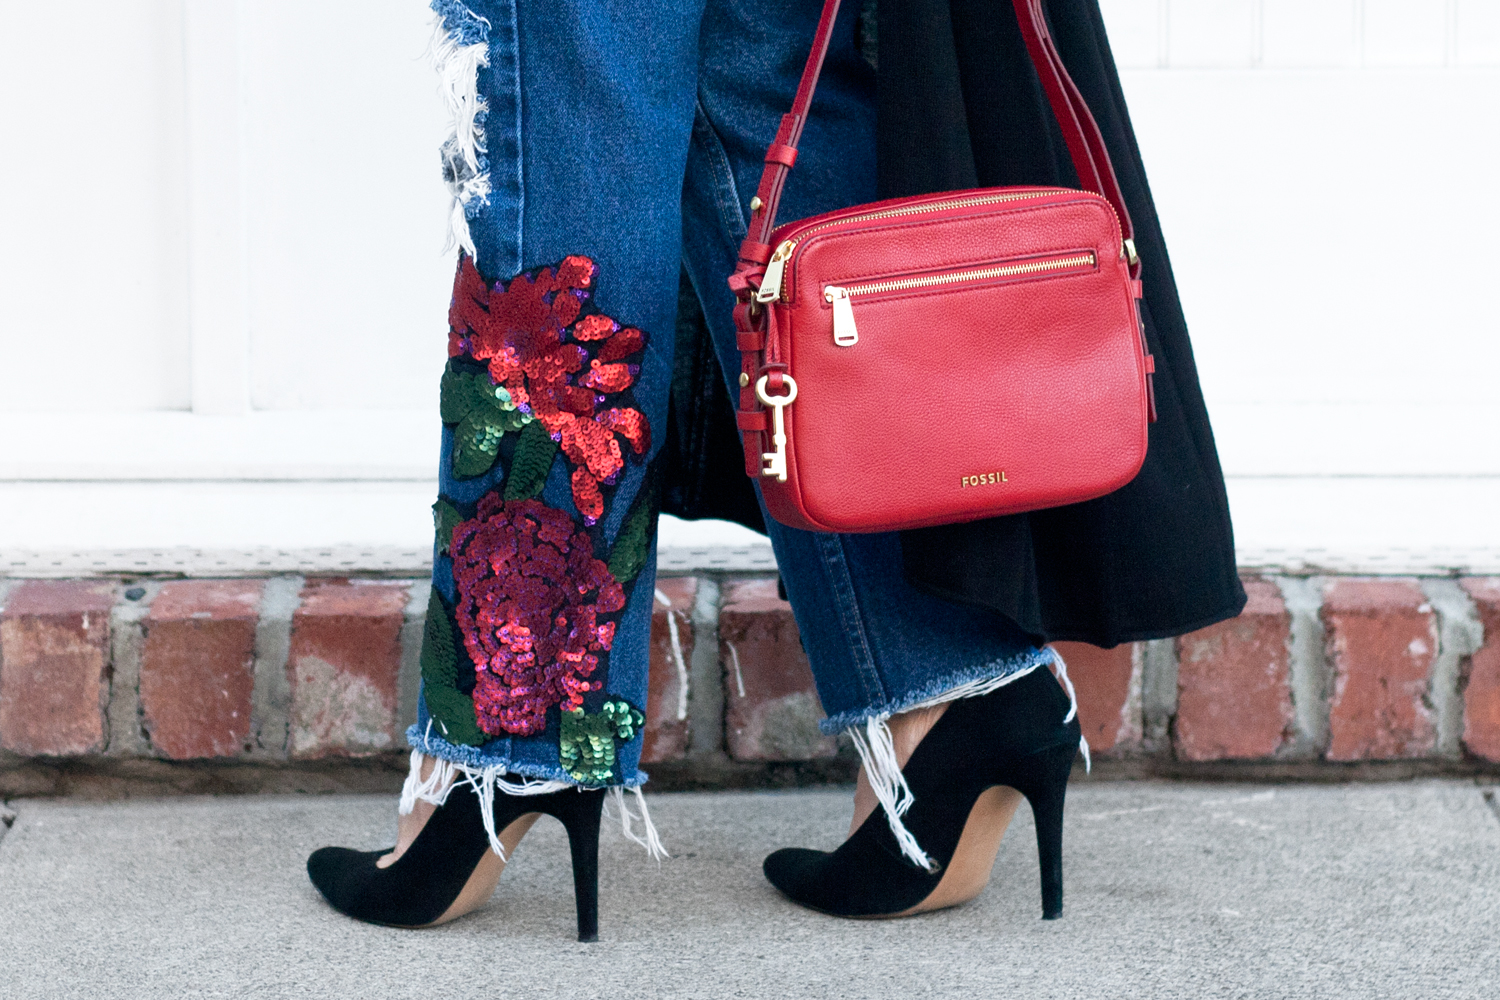 03holiday-sequins-floral-denim-red-fossil-style-fashion